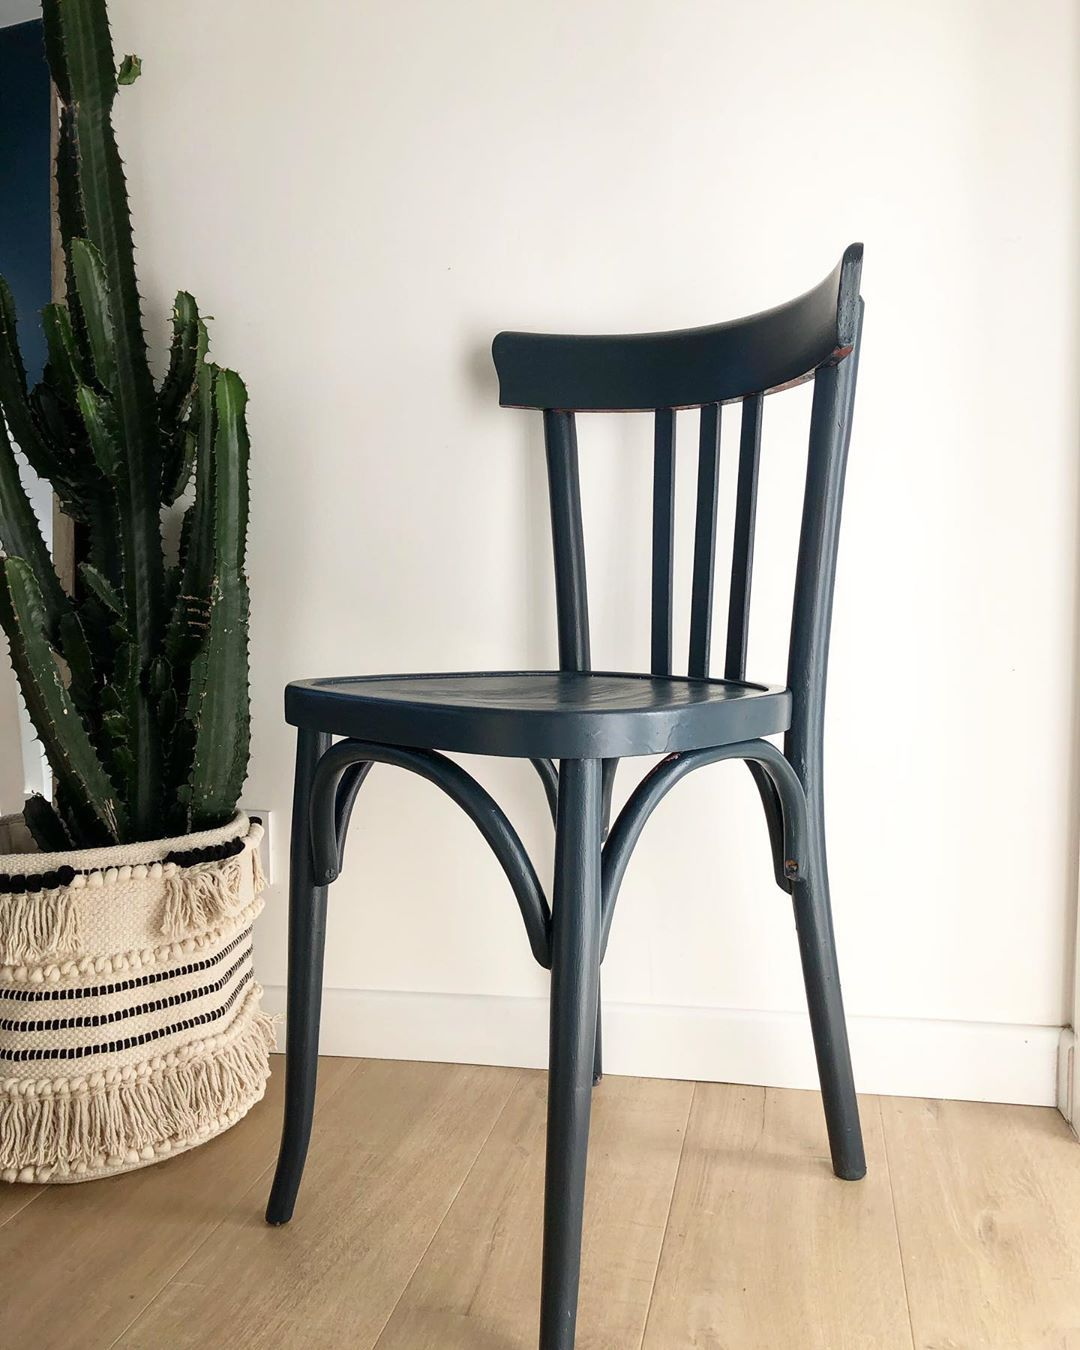 Chaise Bistrot Ancienne Peinte En Bleu Petrole Pour Un Aspect Plus Contemporain Upcycling Upcyclingfurniture Chaisev Dining Chairs Home Decor Decor